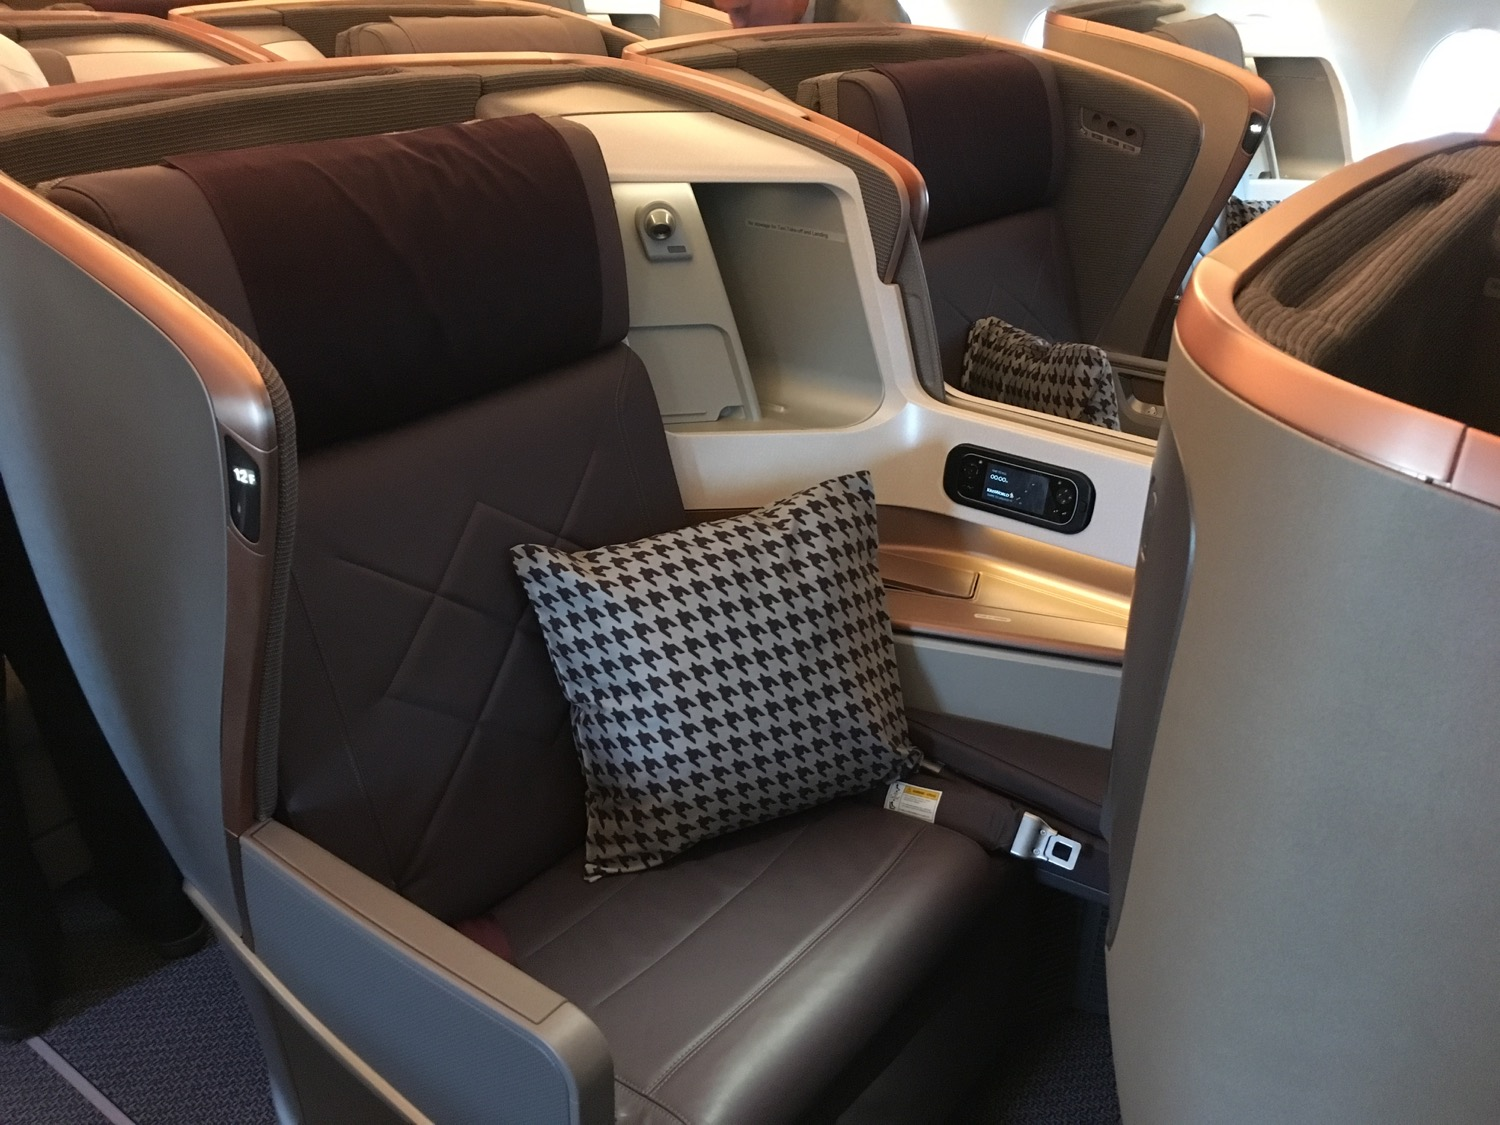 Singapore Airlines A350 Business Class Sitz - 1